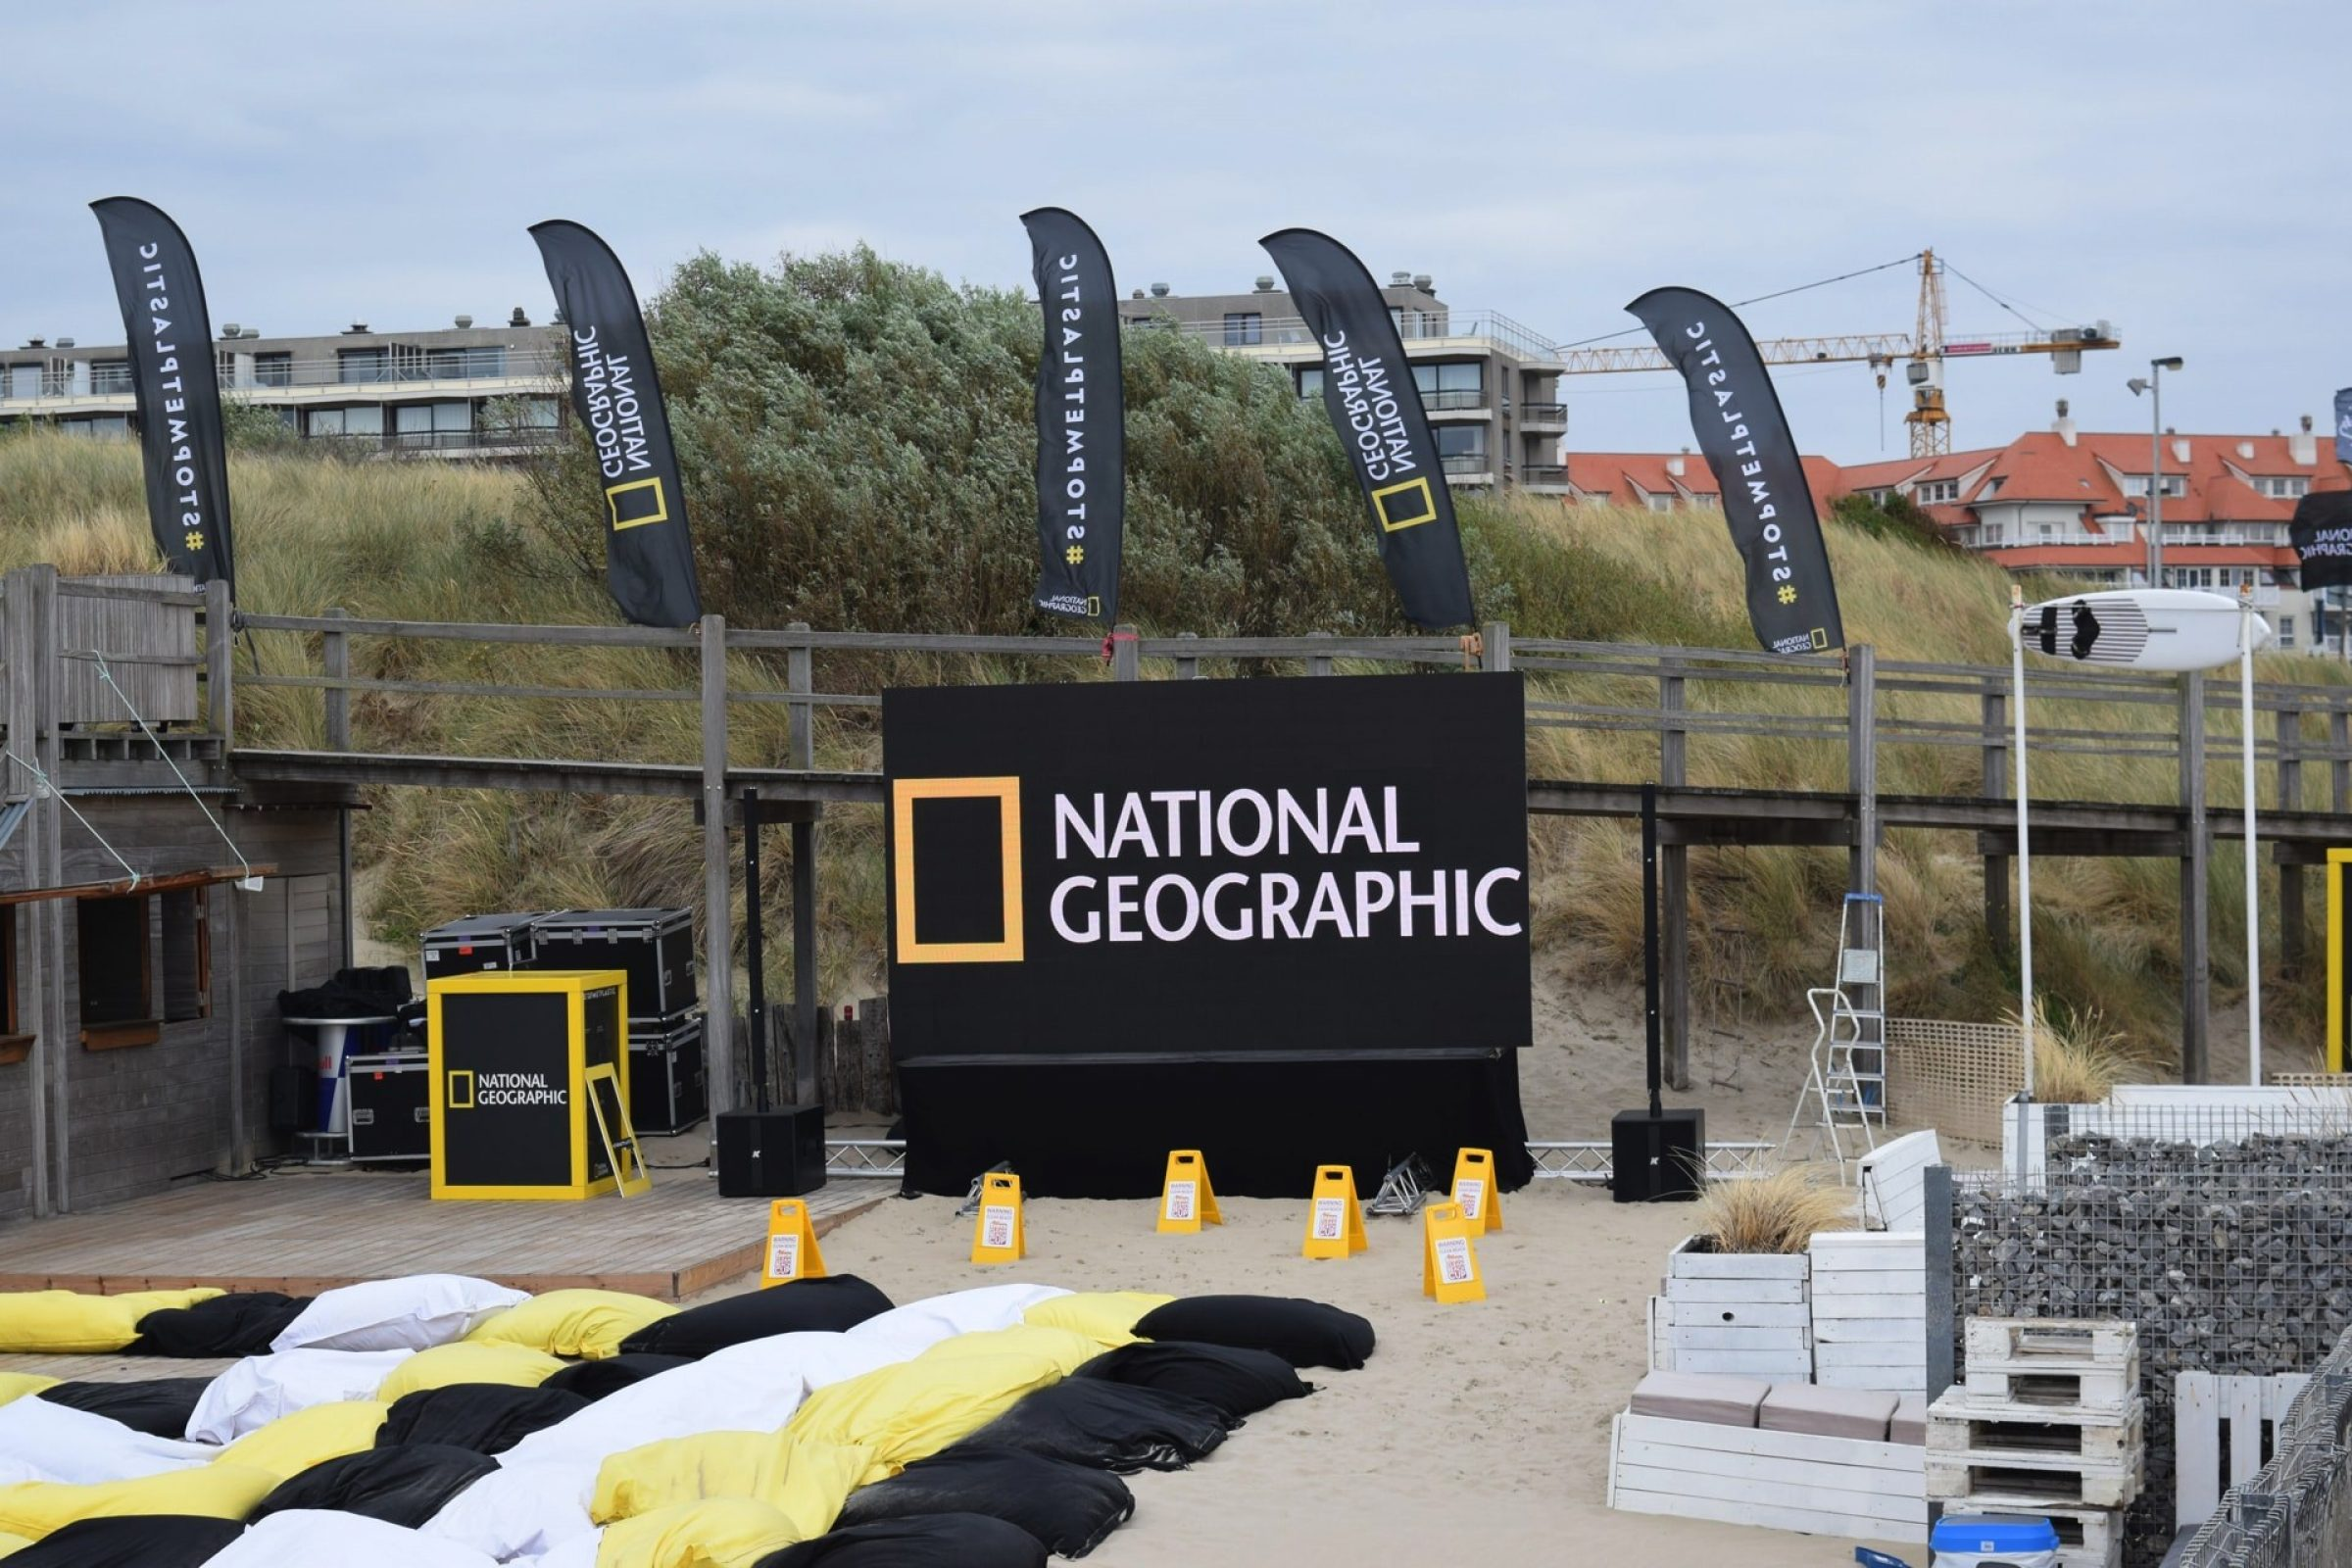 Fast Forward Evenementenbureau Gent Nation Geographic Publiek Event Surfclubnat Geo 2